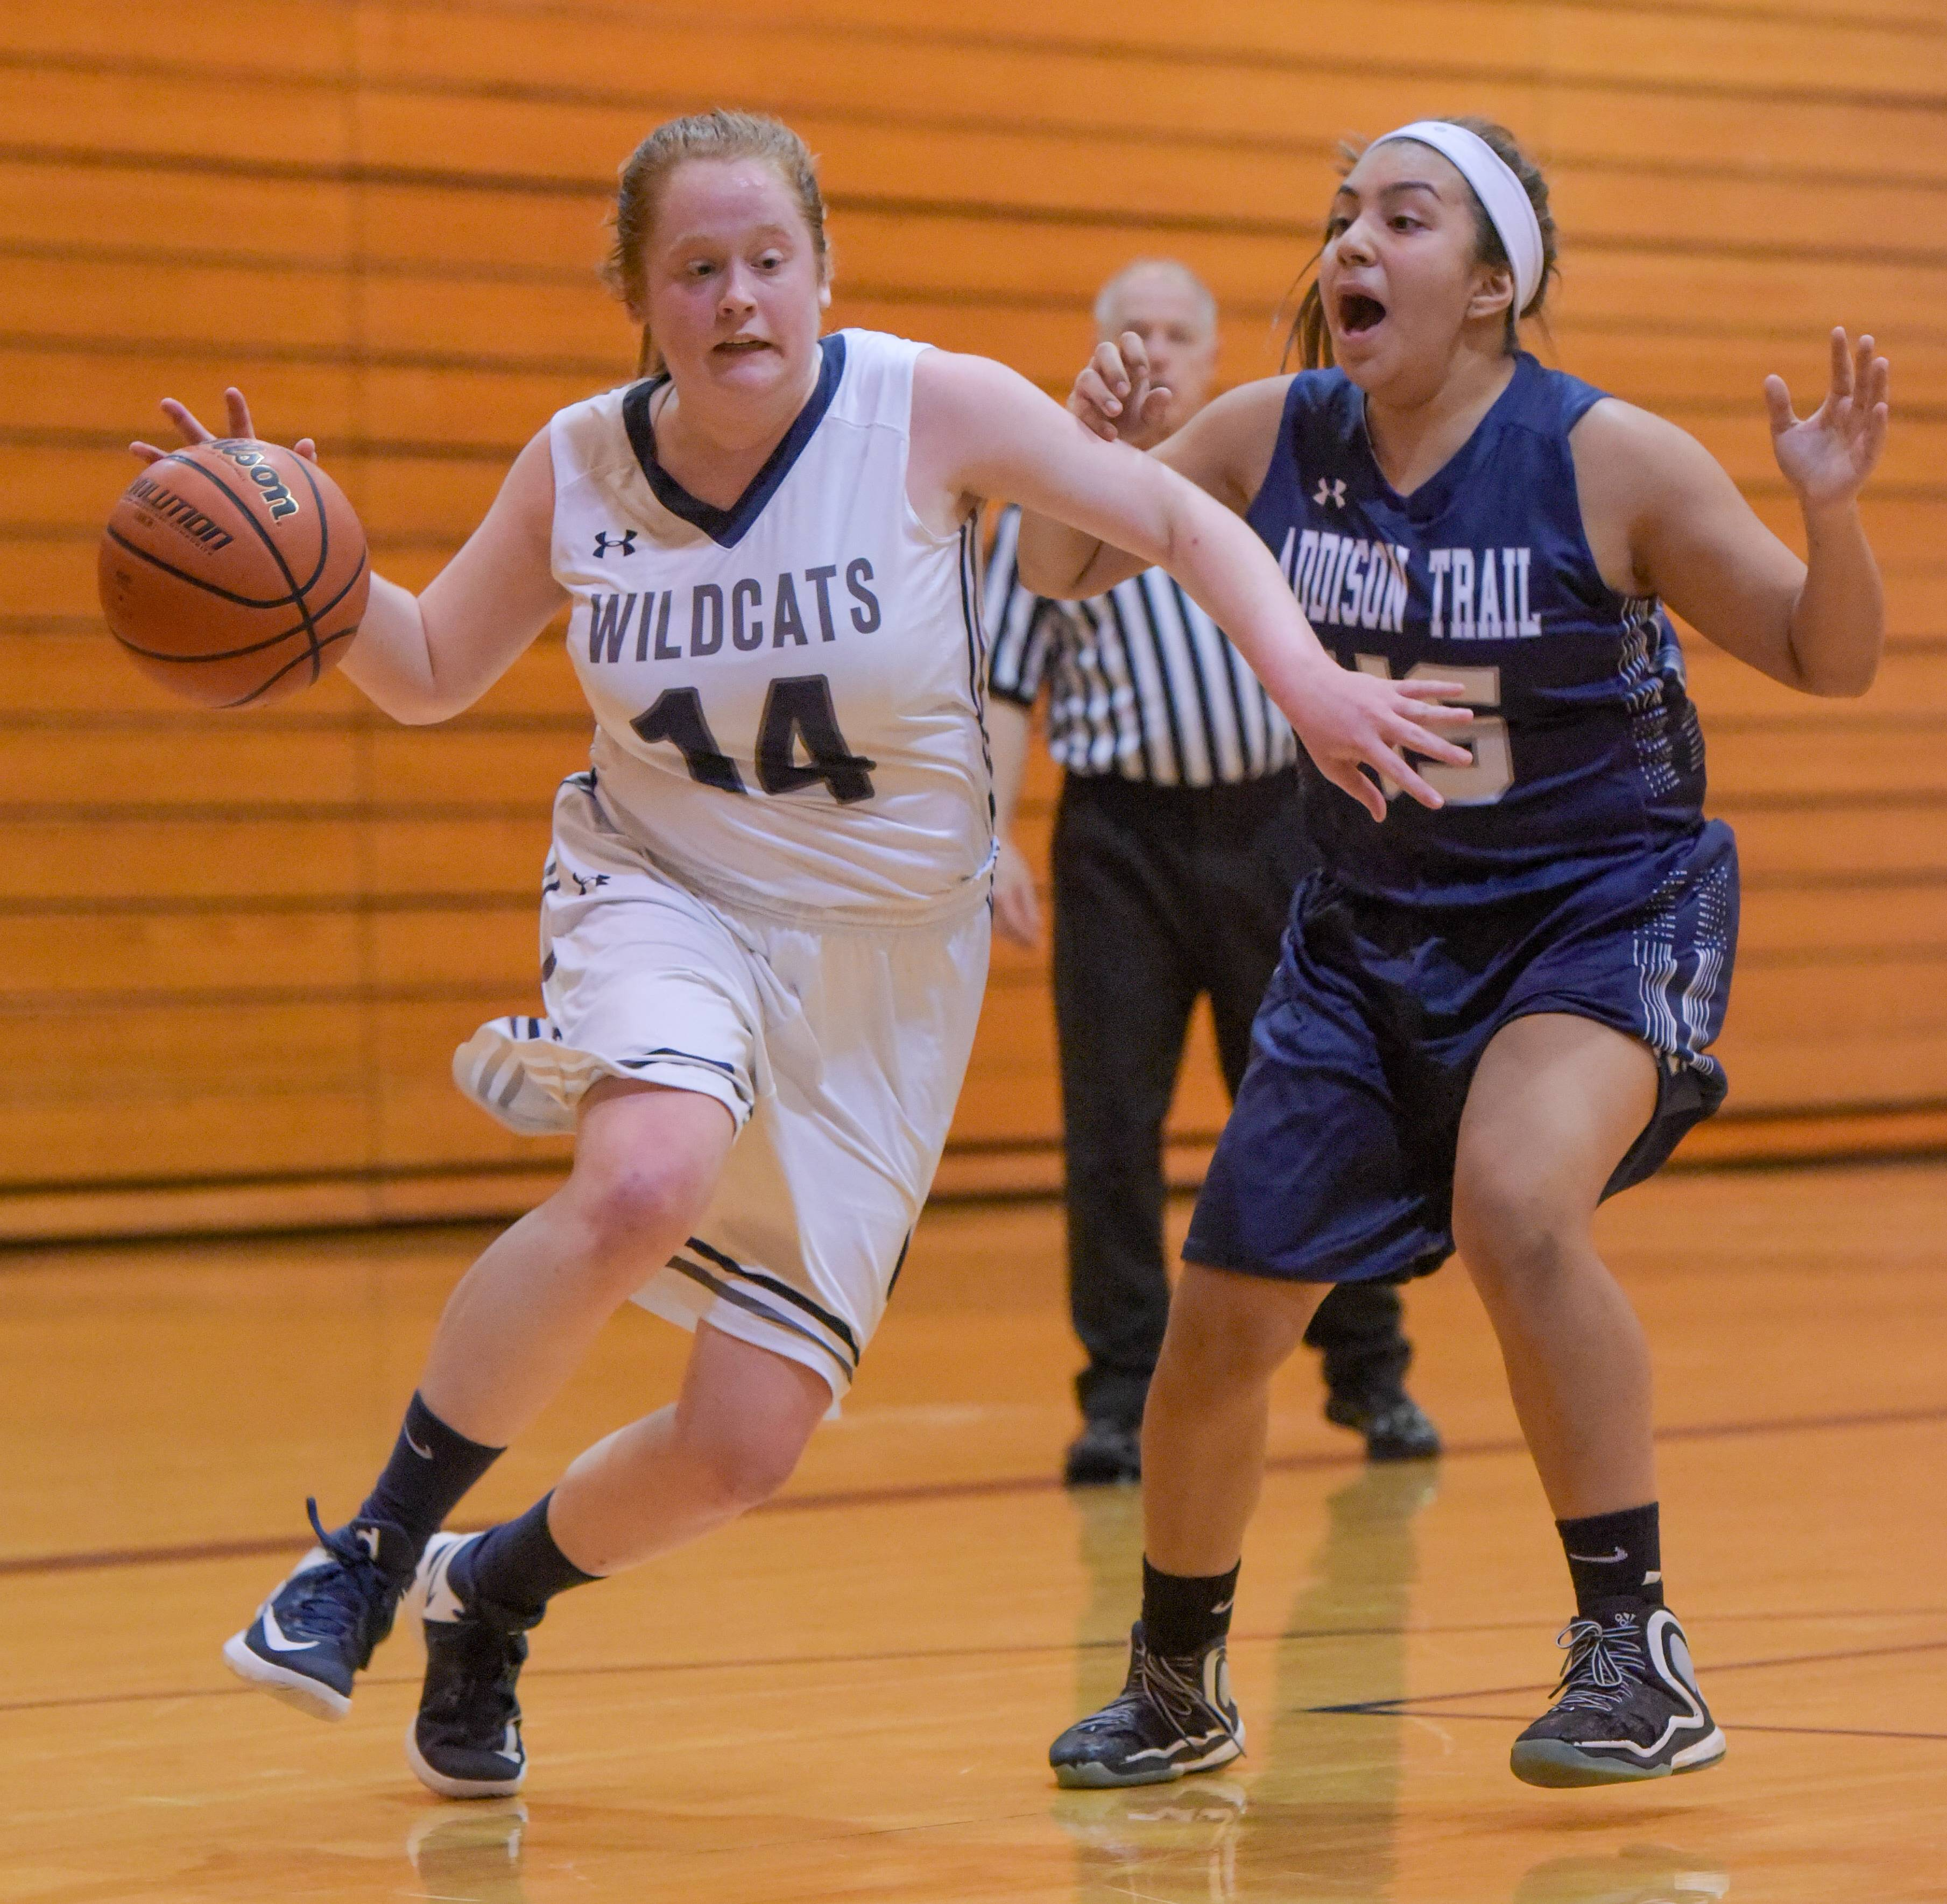 West Chicago vs. Addison Trail, girls basketball